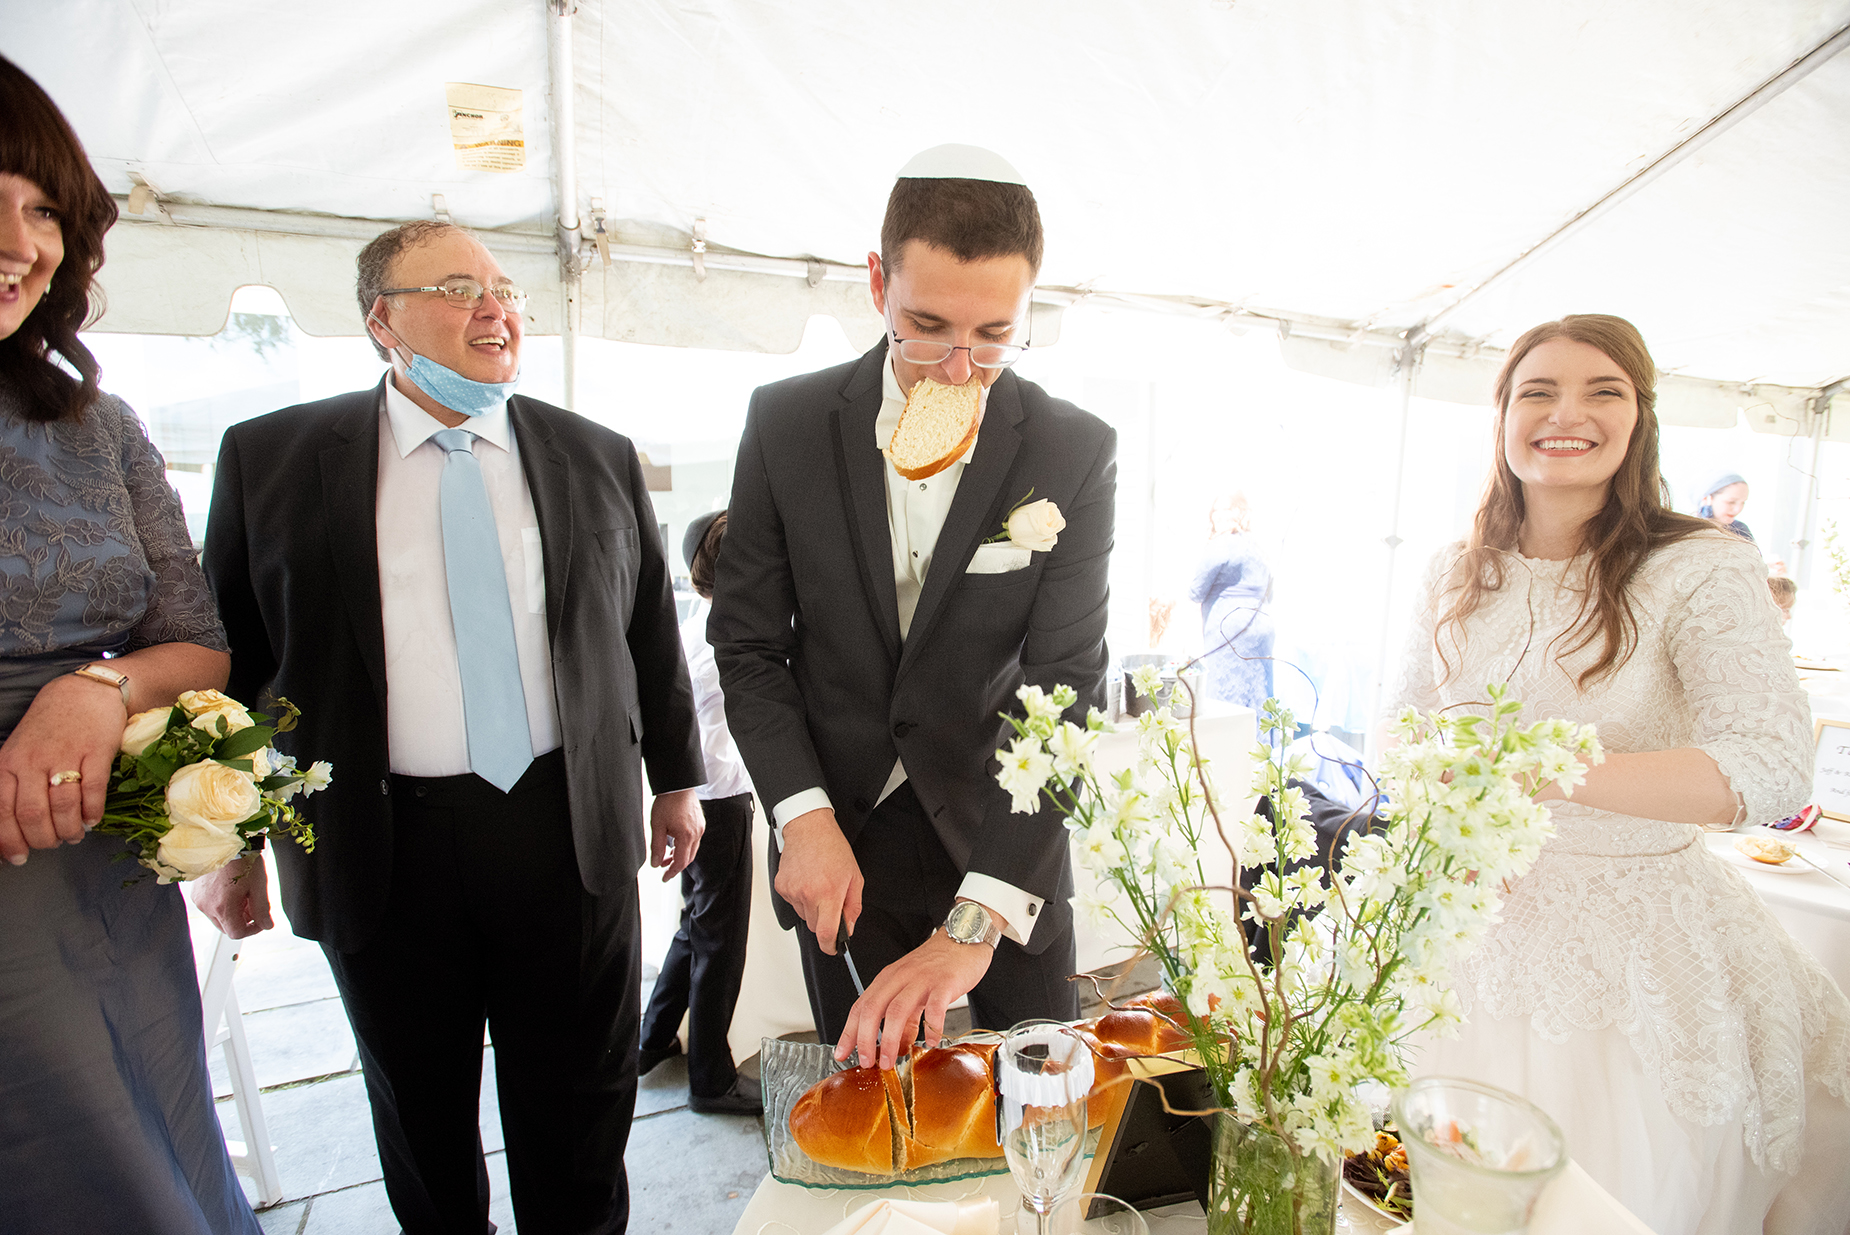 Pittsburgh, PA Wedding Image | The groom is using his mouth to hold on to a slice of challah